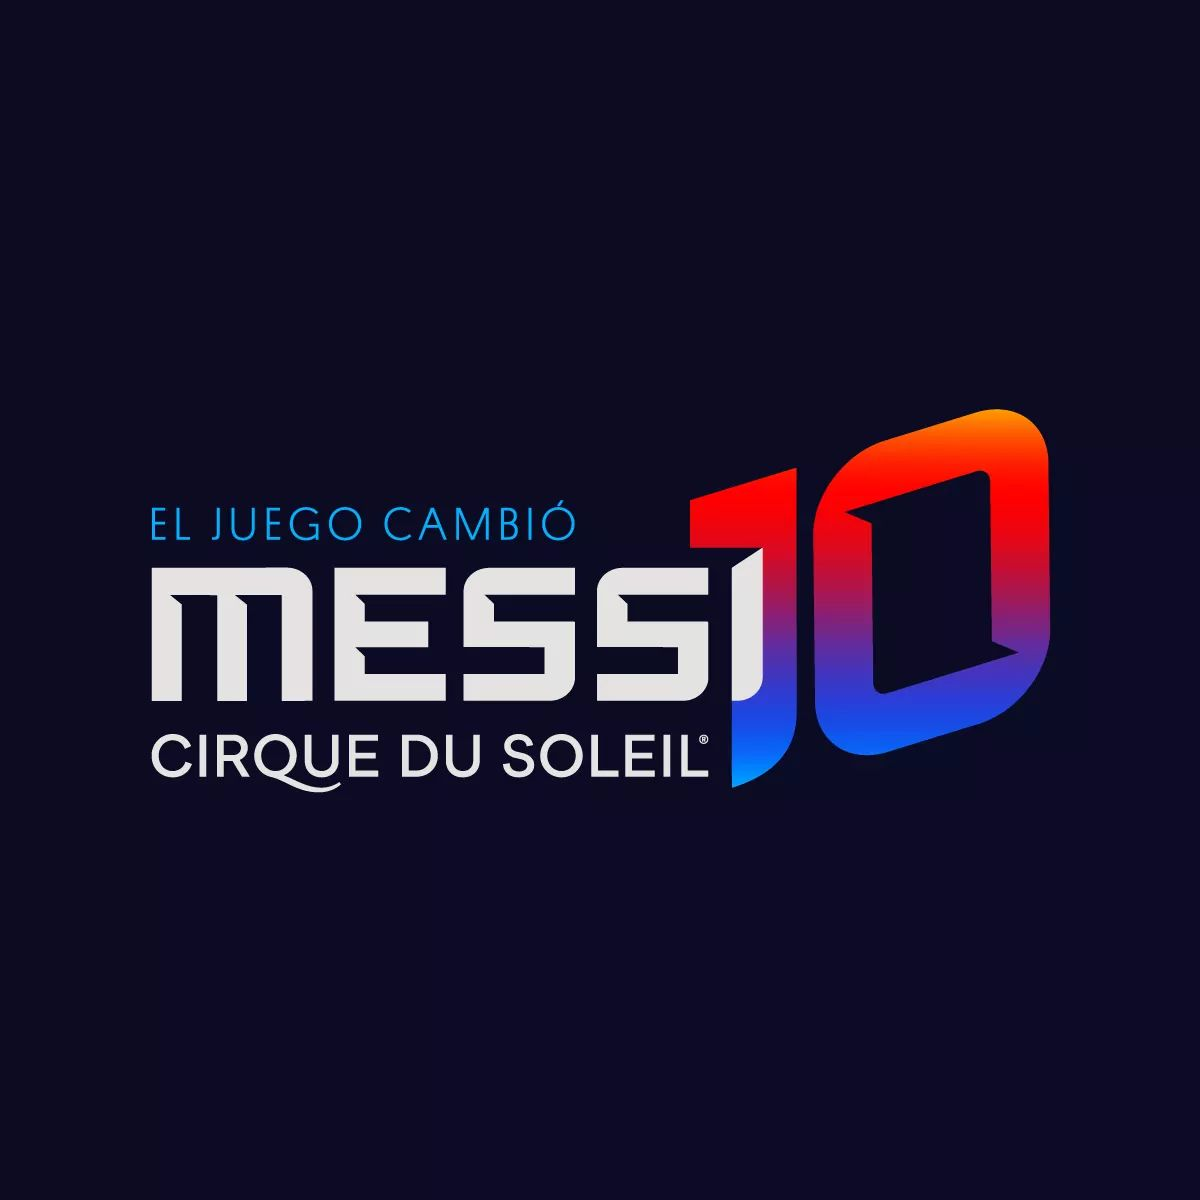 Quotes On Messi On Twitter At Cirque Messi10 By Cirque Du Soleil